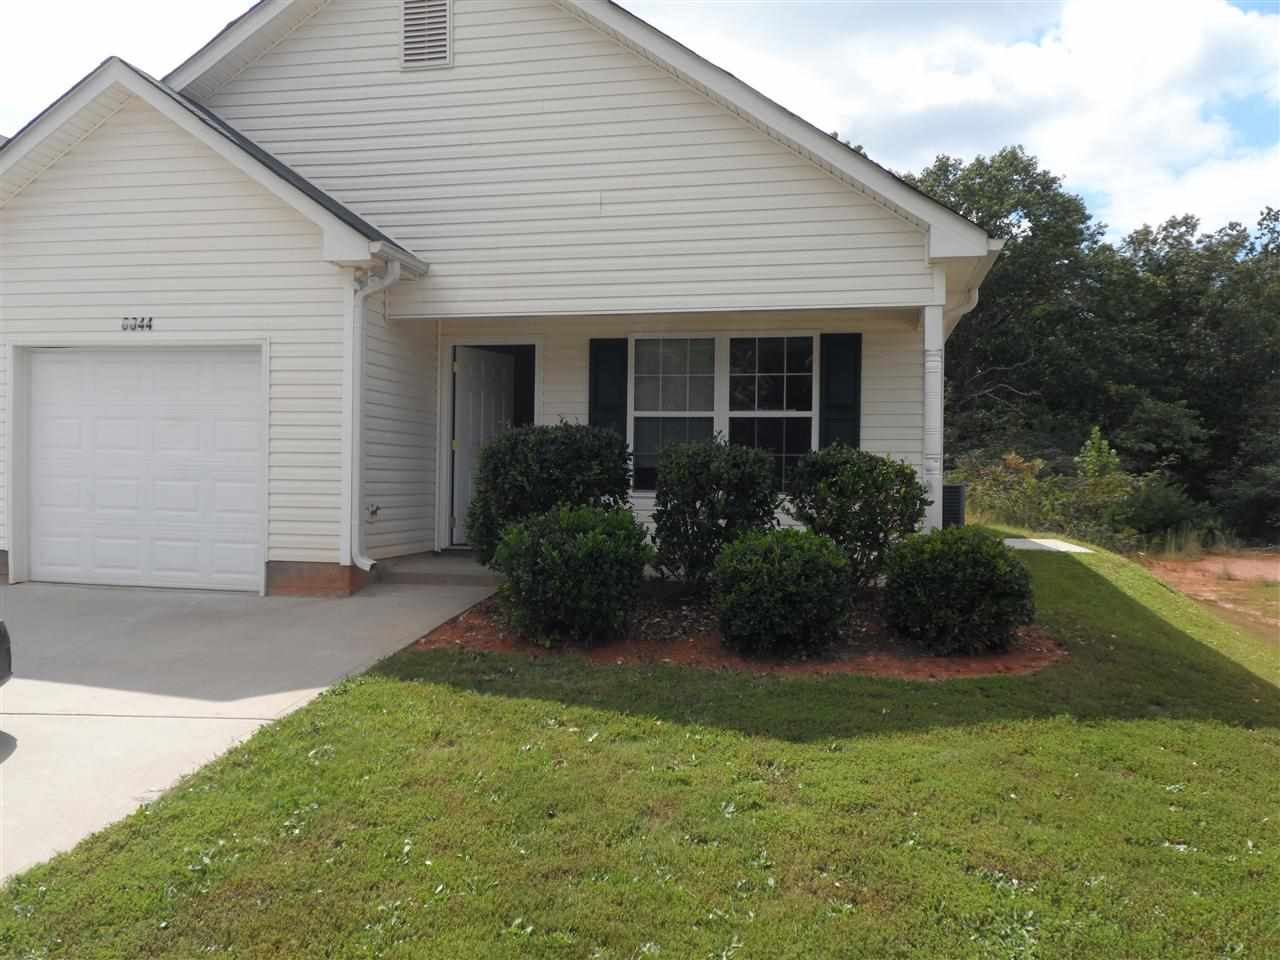 Rental Homes for Rent, ListingId:30033269, location: 8044 Utica St Seneca 29678